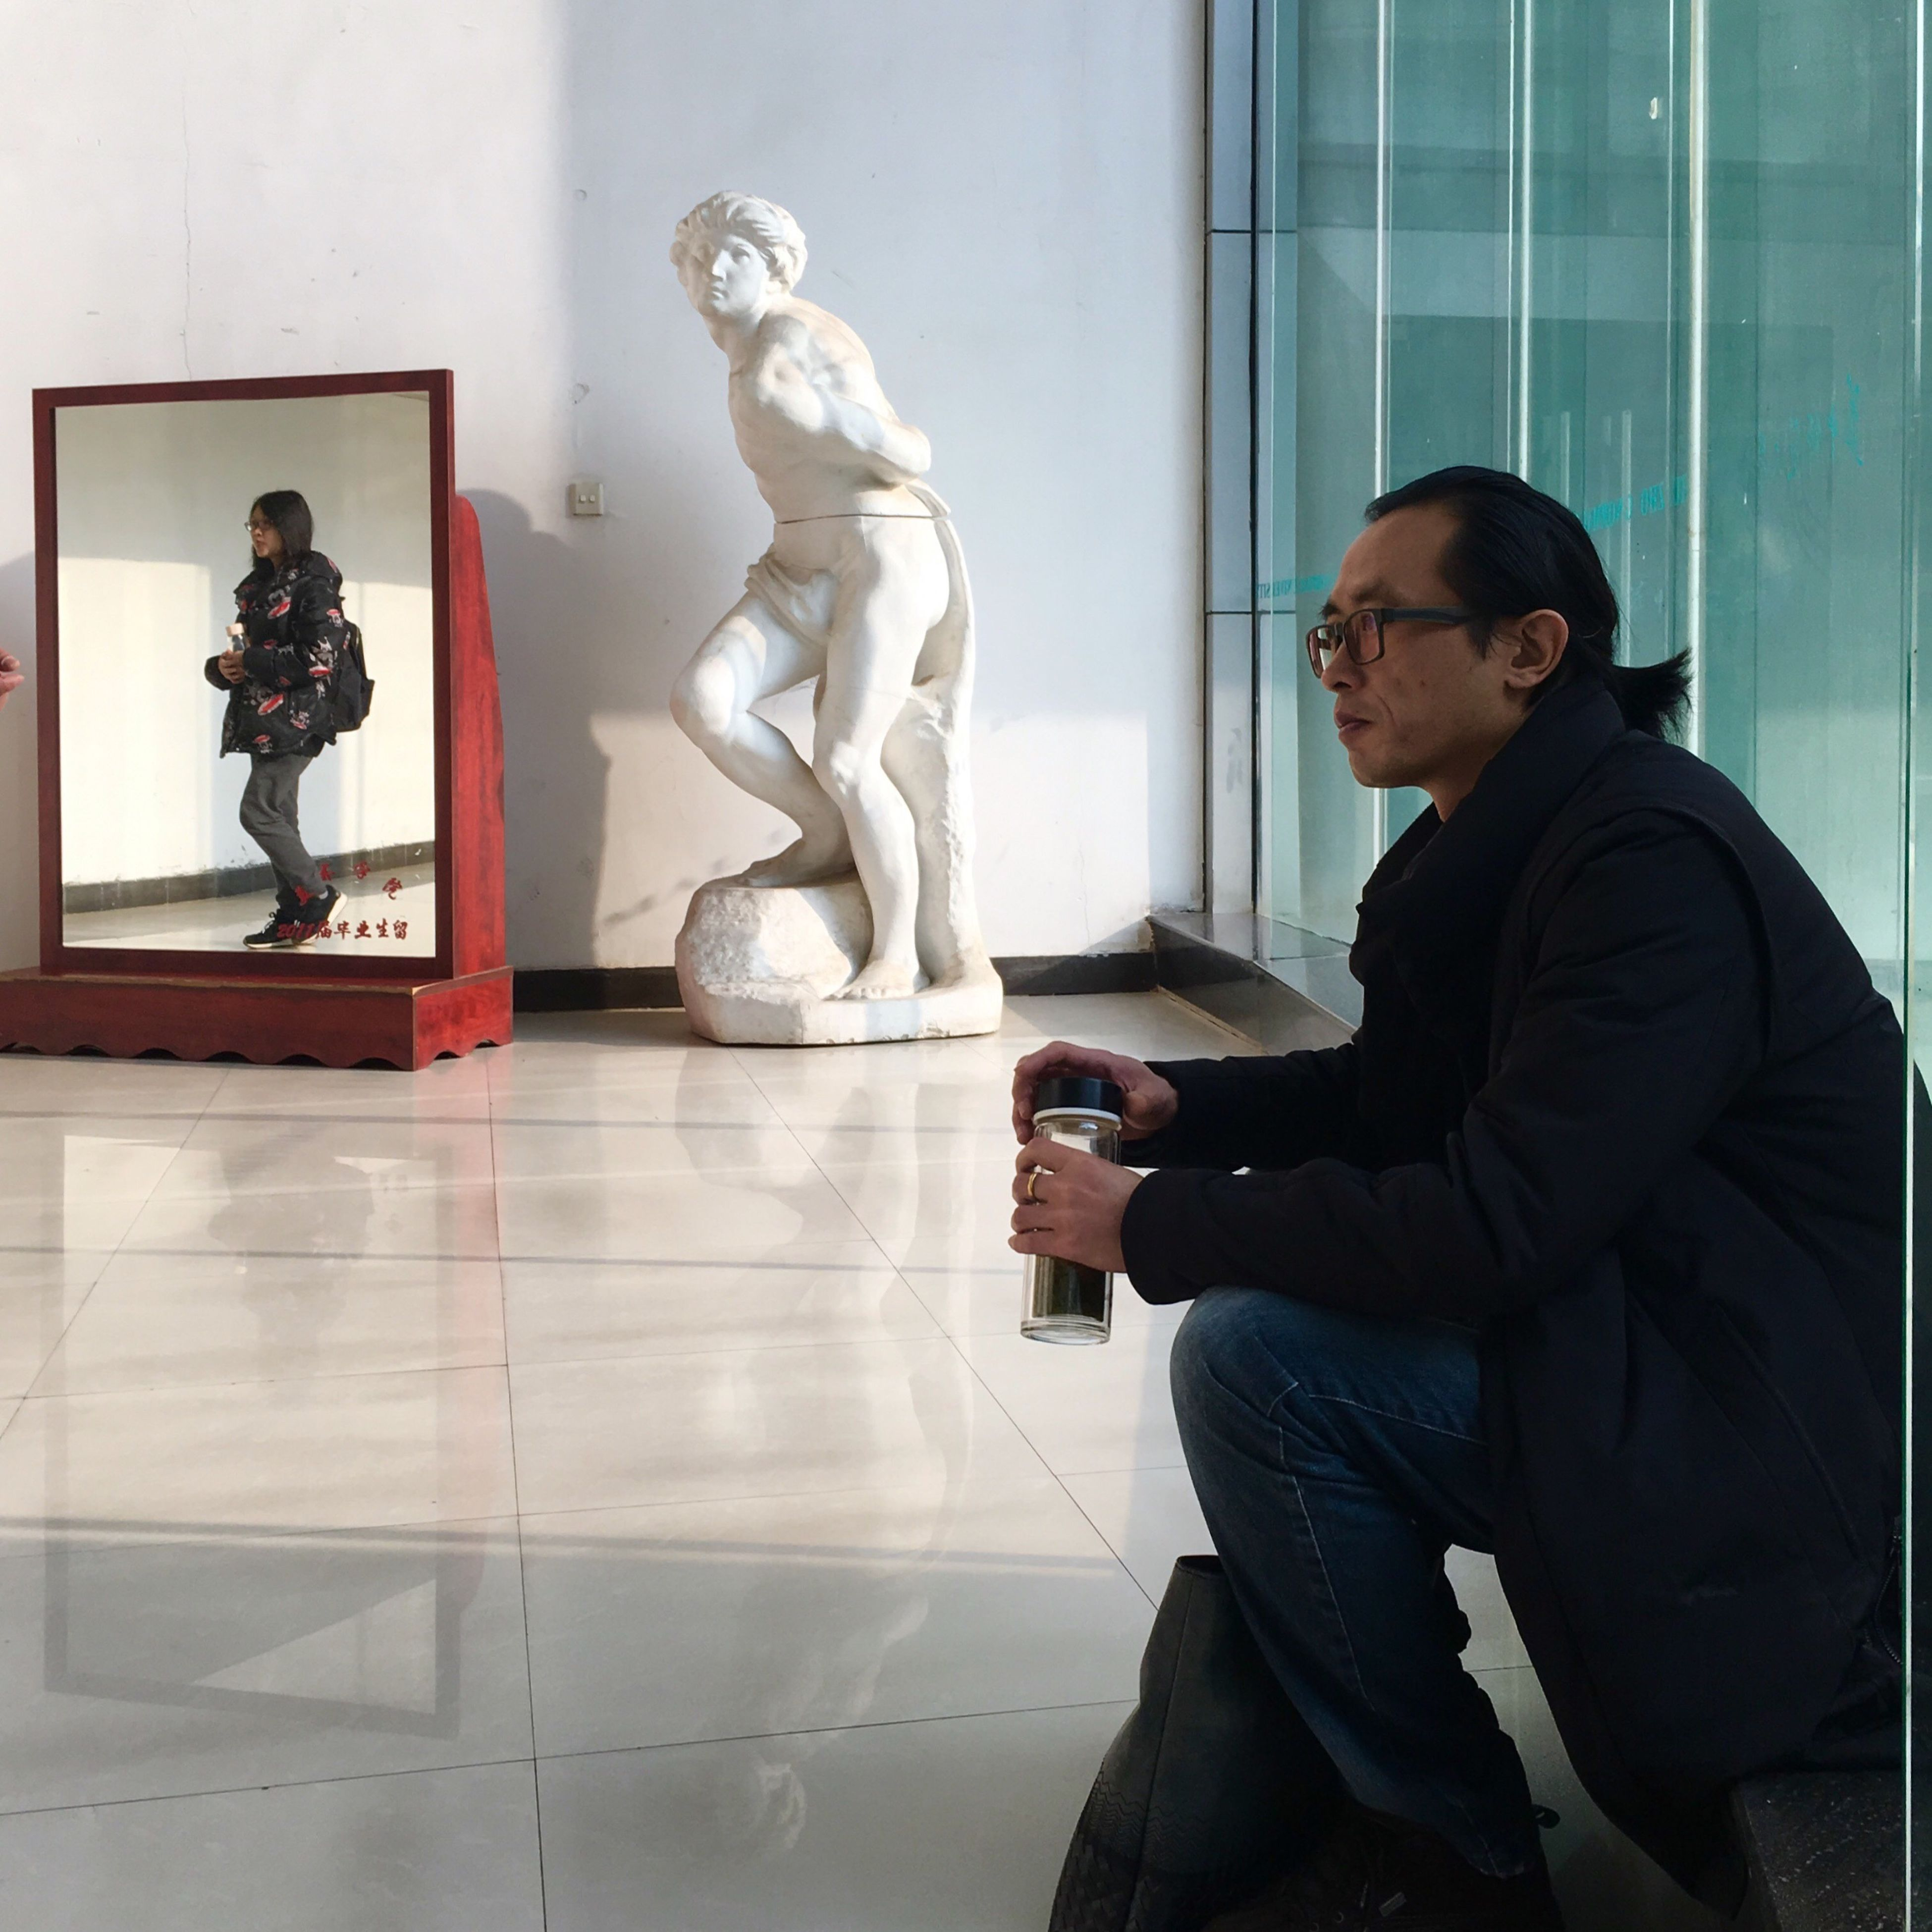 statue, sculpture, indoors, adult, people, day